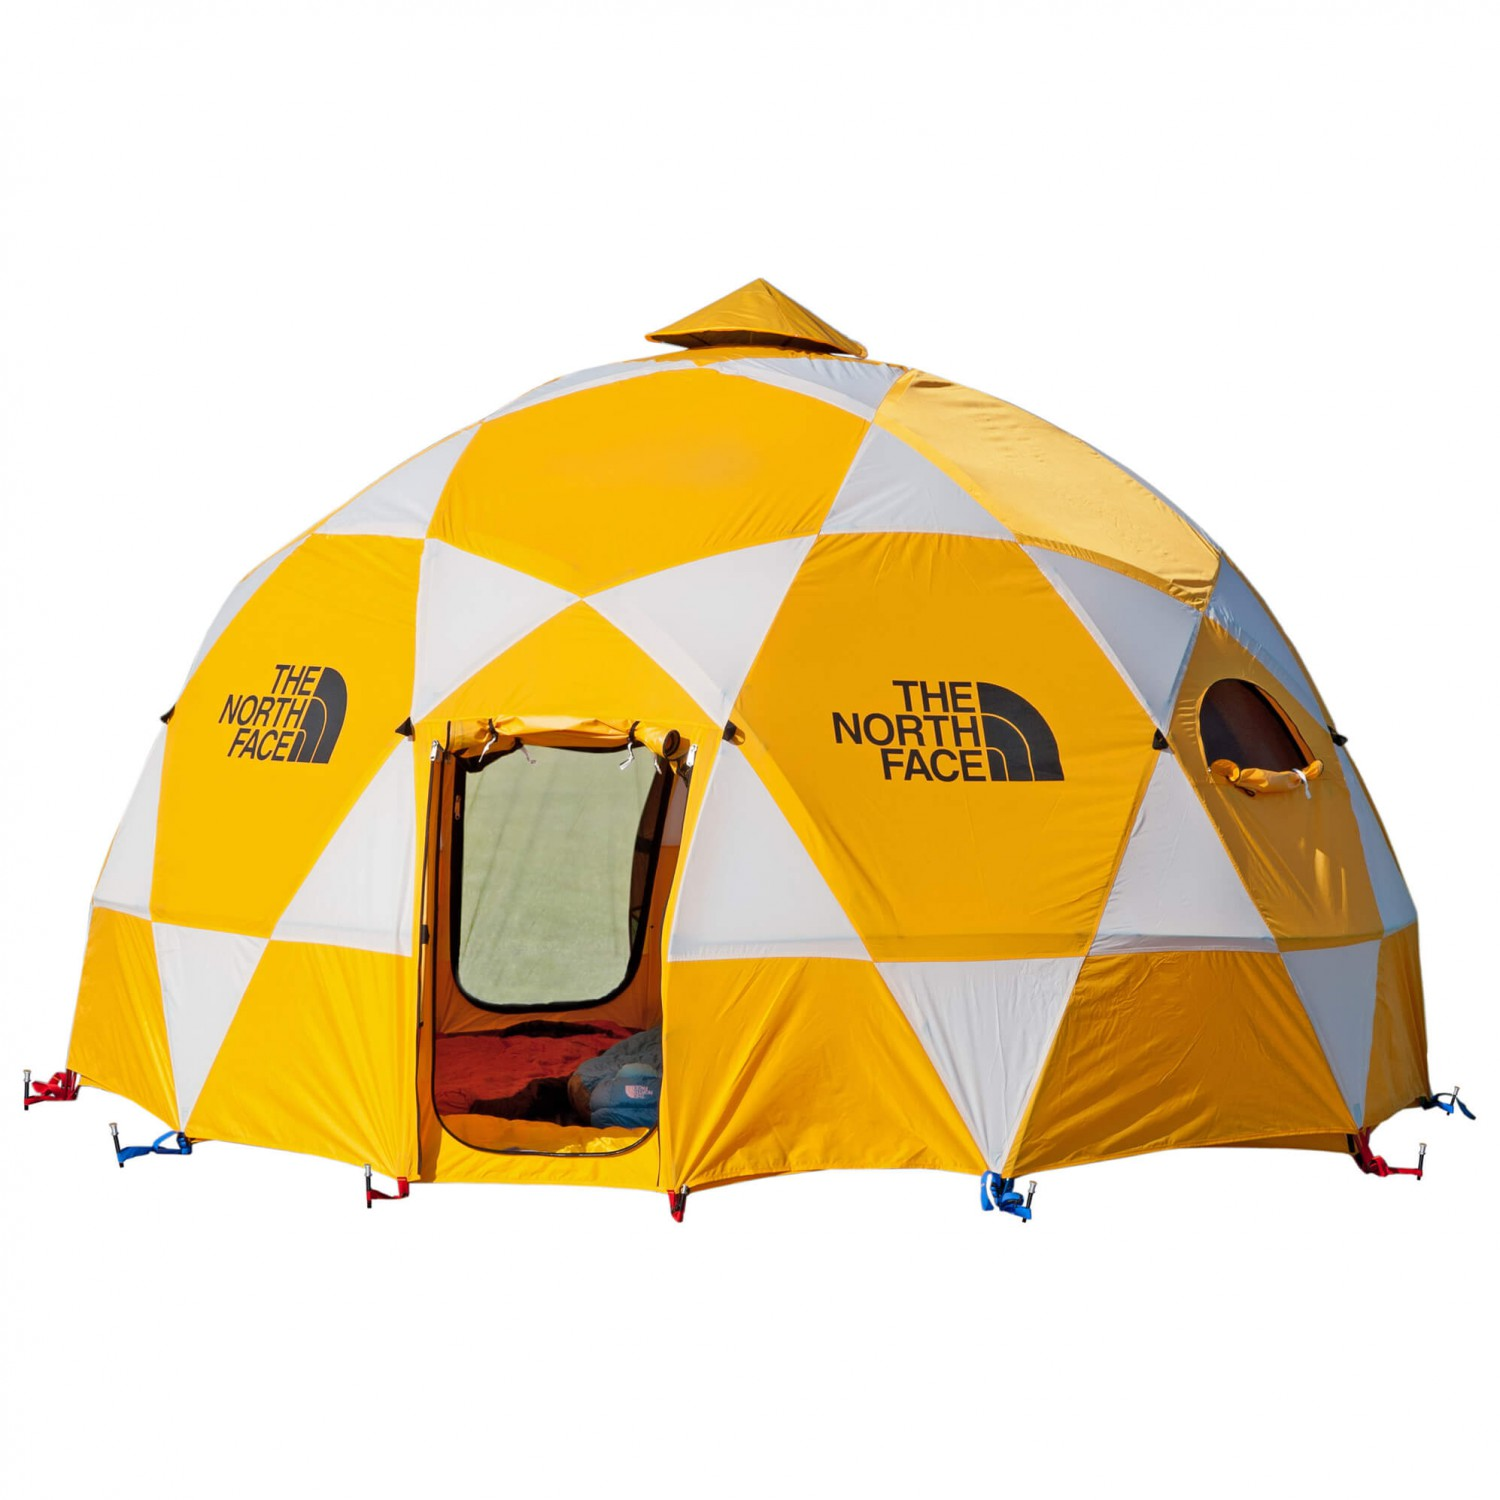 ... The North Face - 2-Meter Dome - Group tent ...  sc 1 th 225 & The North Face 2-Meter Dome - Group Tent | Free UK Delivery ...